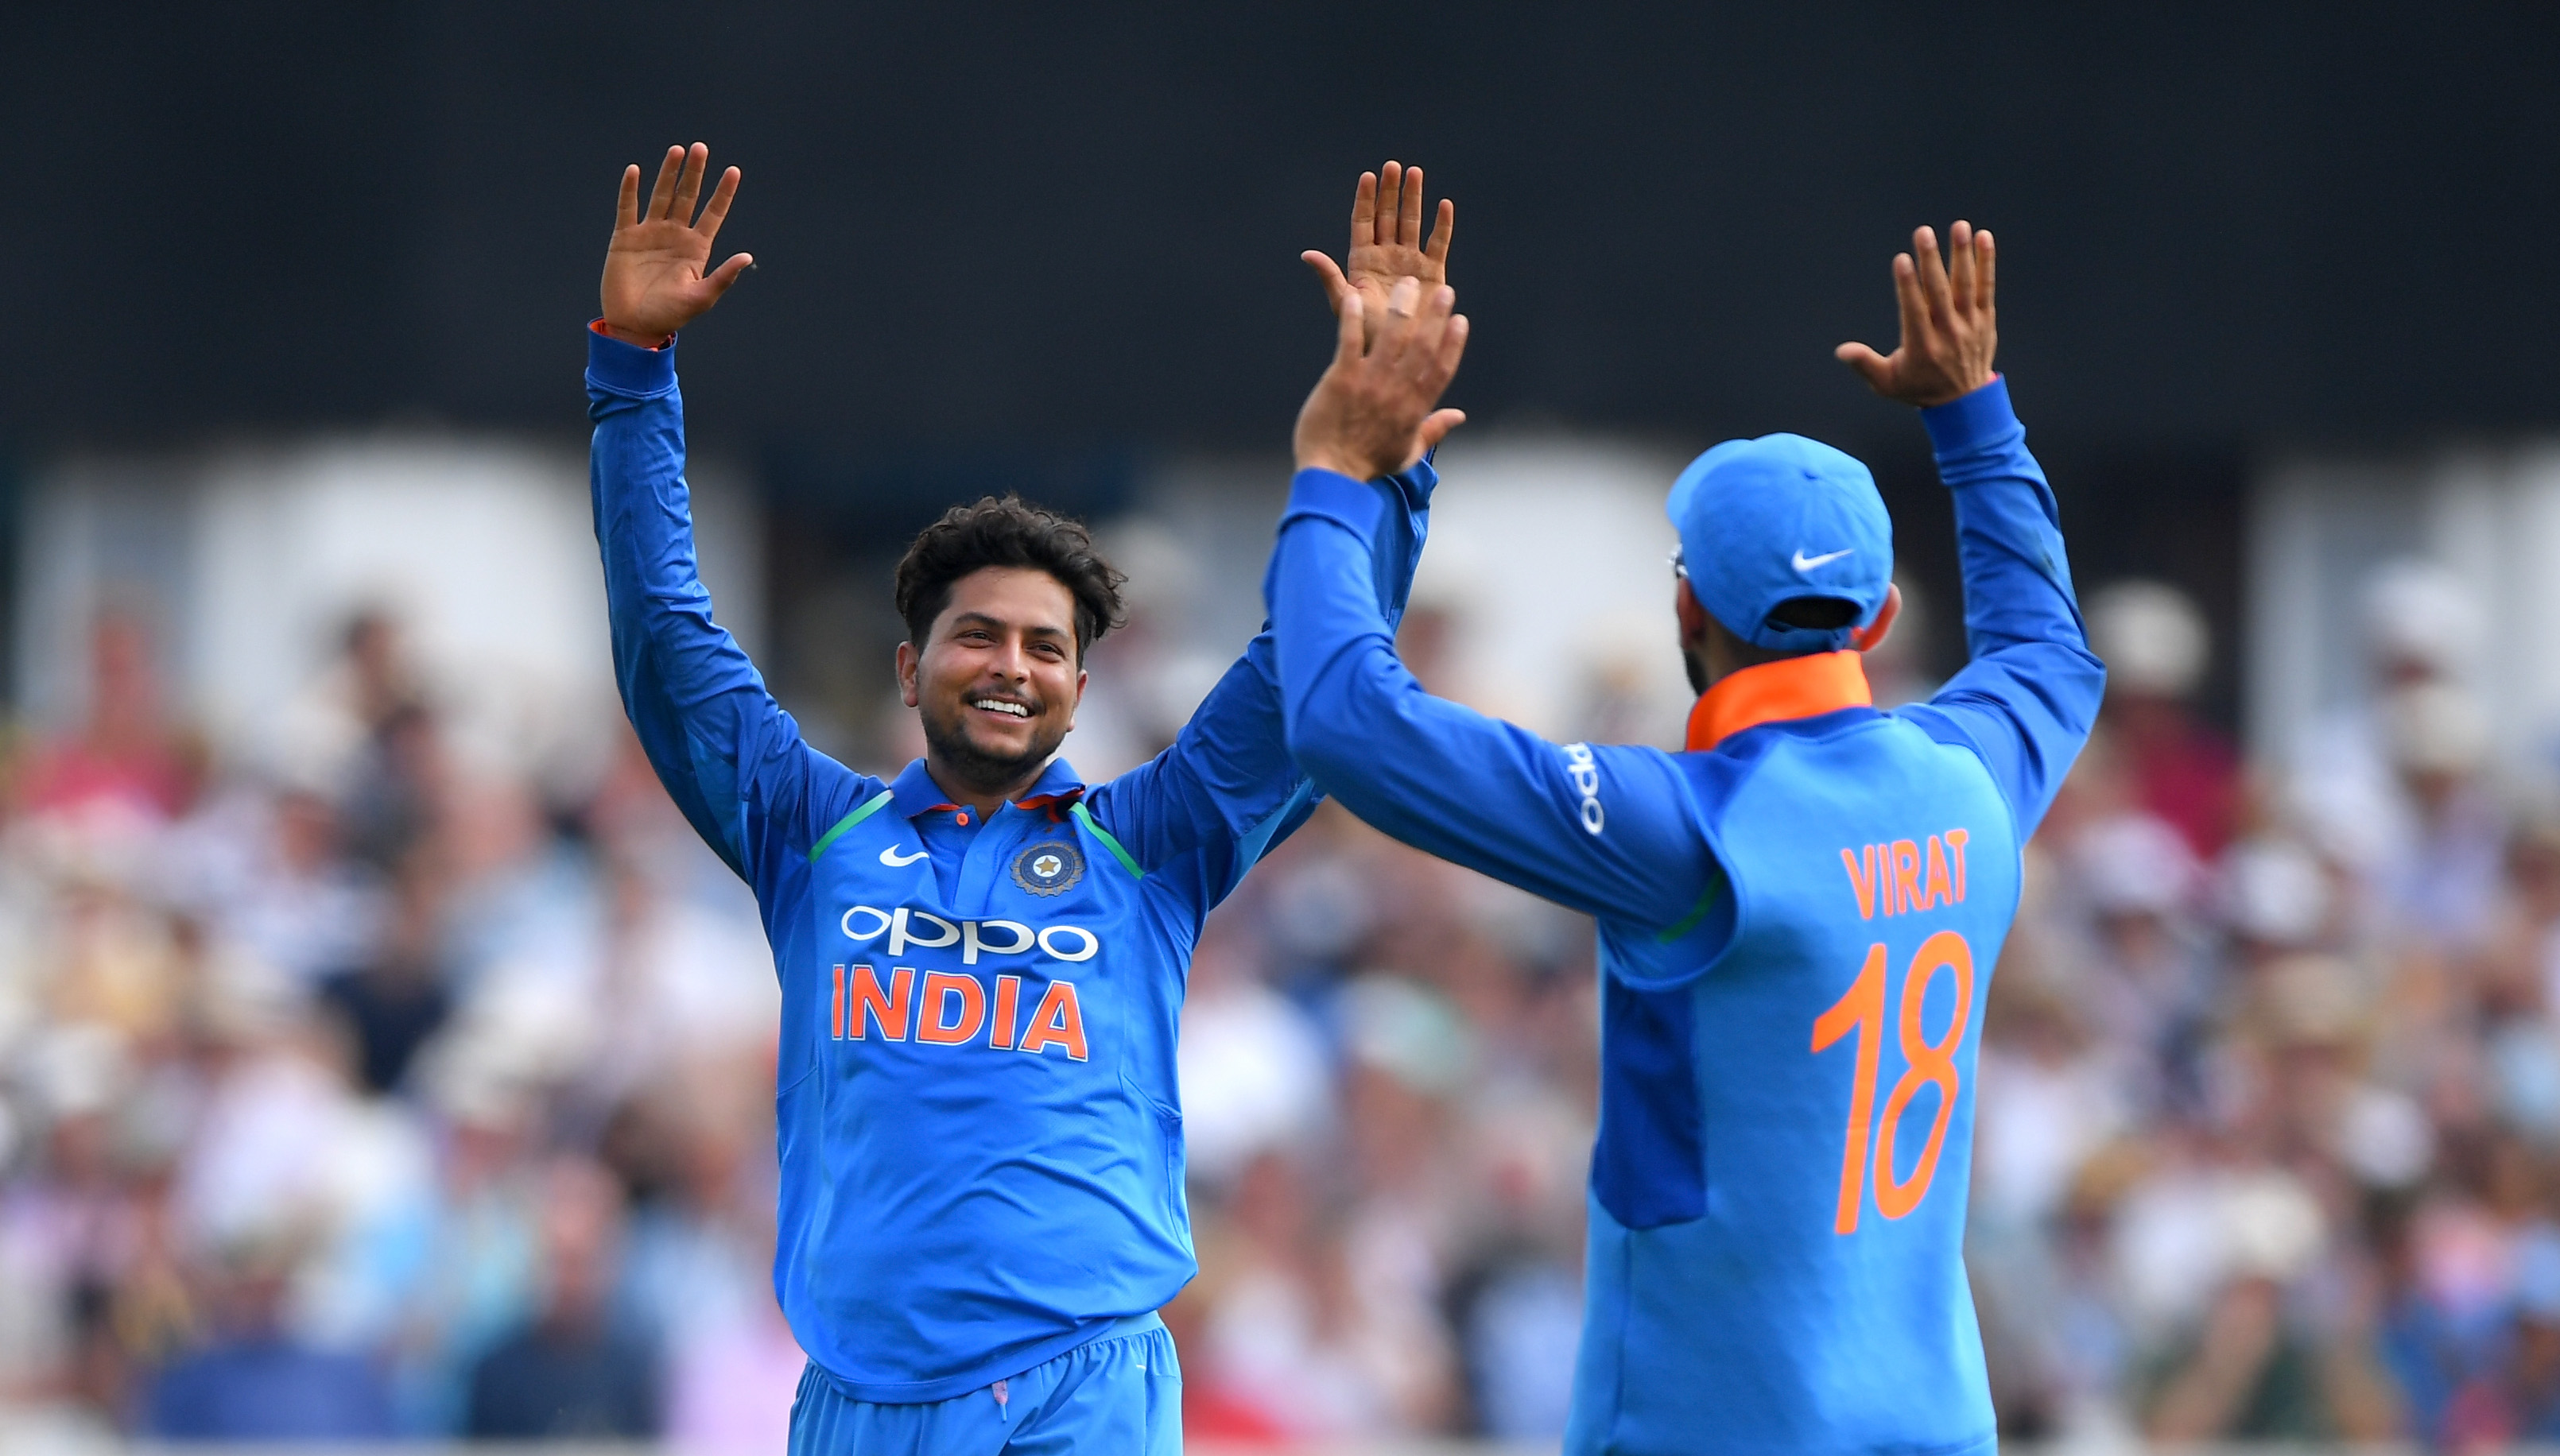 Kuldeep Yadav (6/25) registered 4th best bowling figures for India in ODI cricket. (Photo - getty)